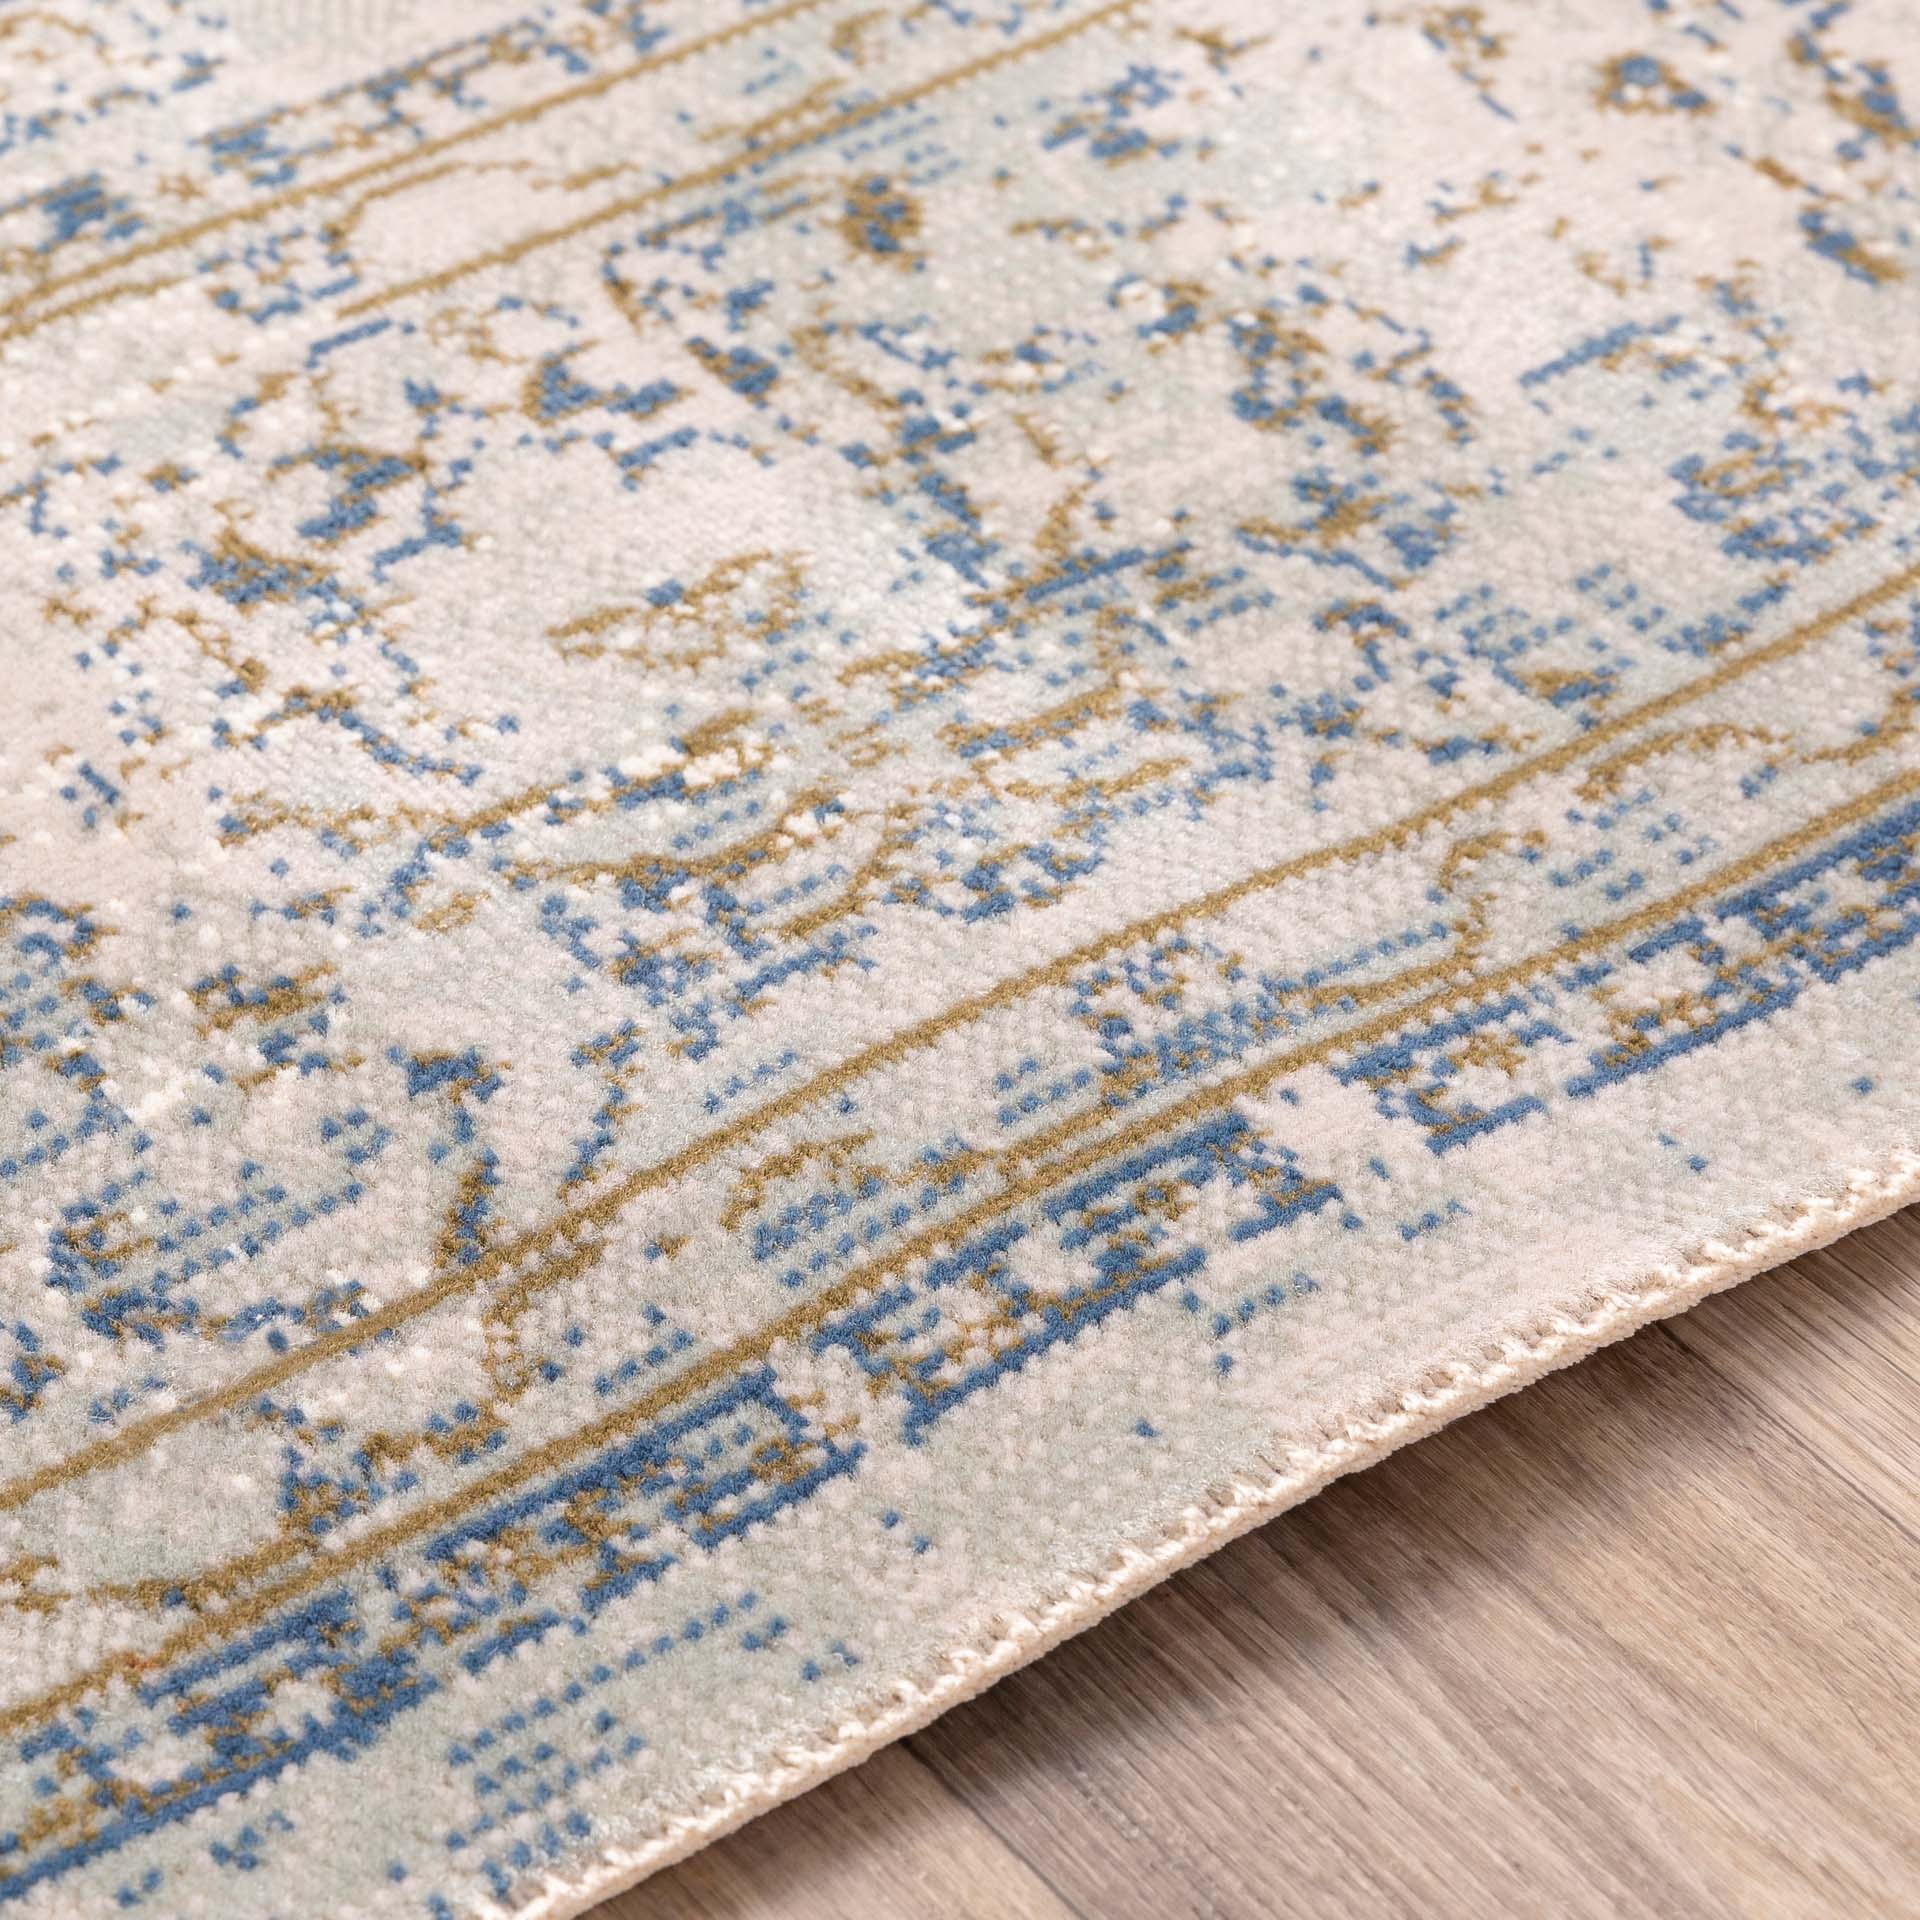 Classic machine woven area rug in beige with blue and green accents on light wood floor - Detail Shot